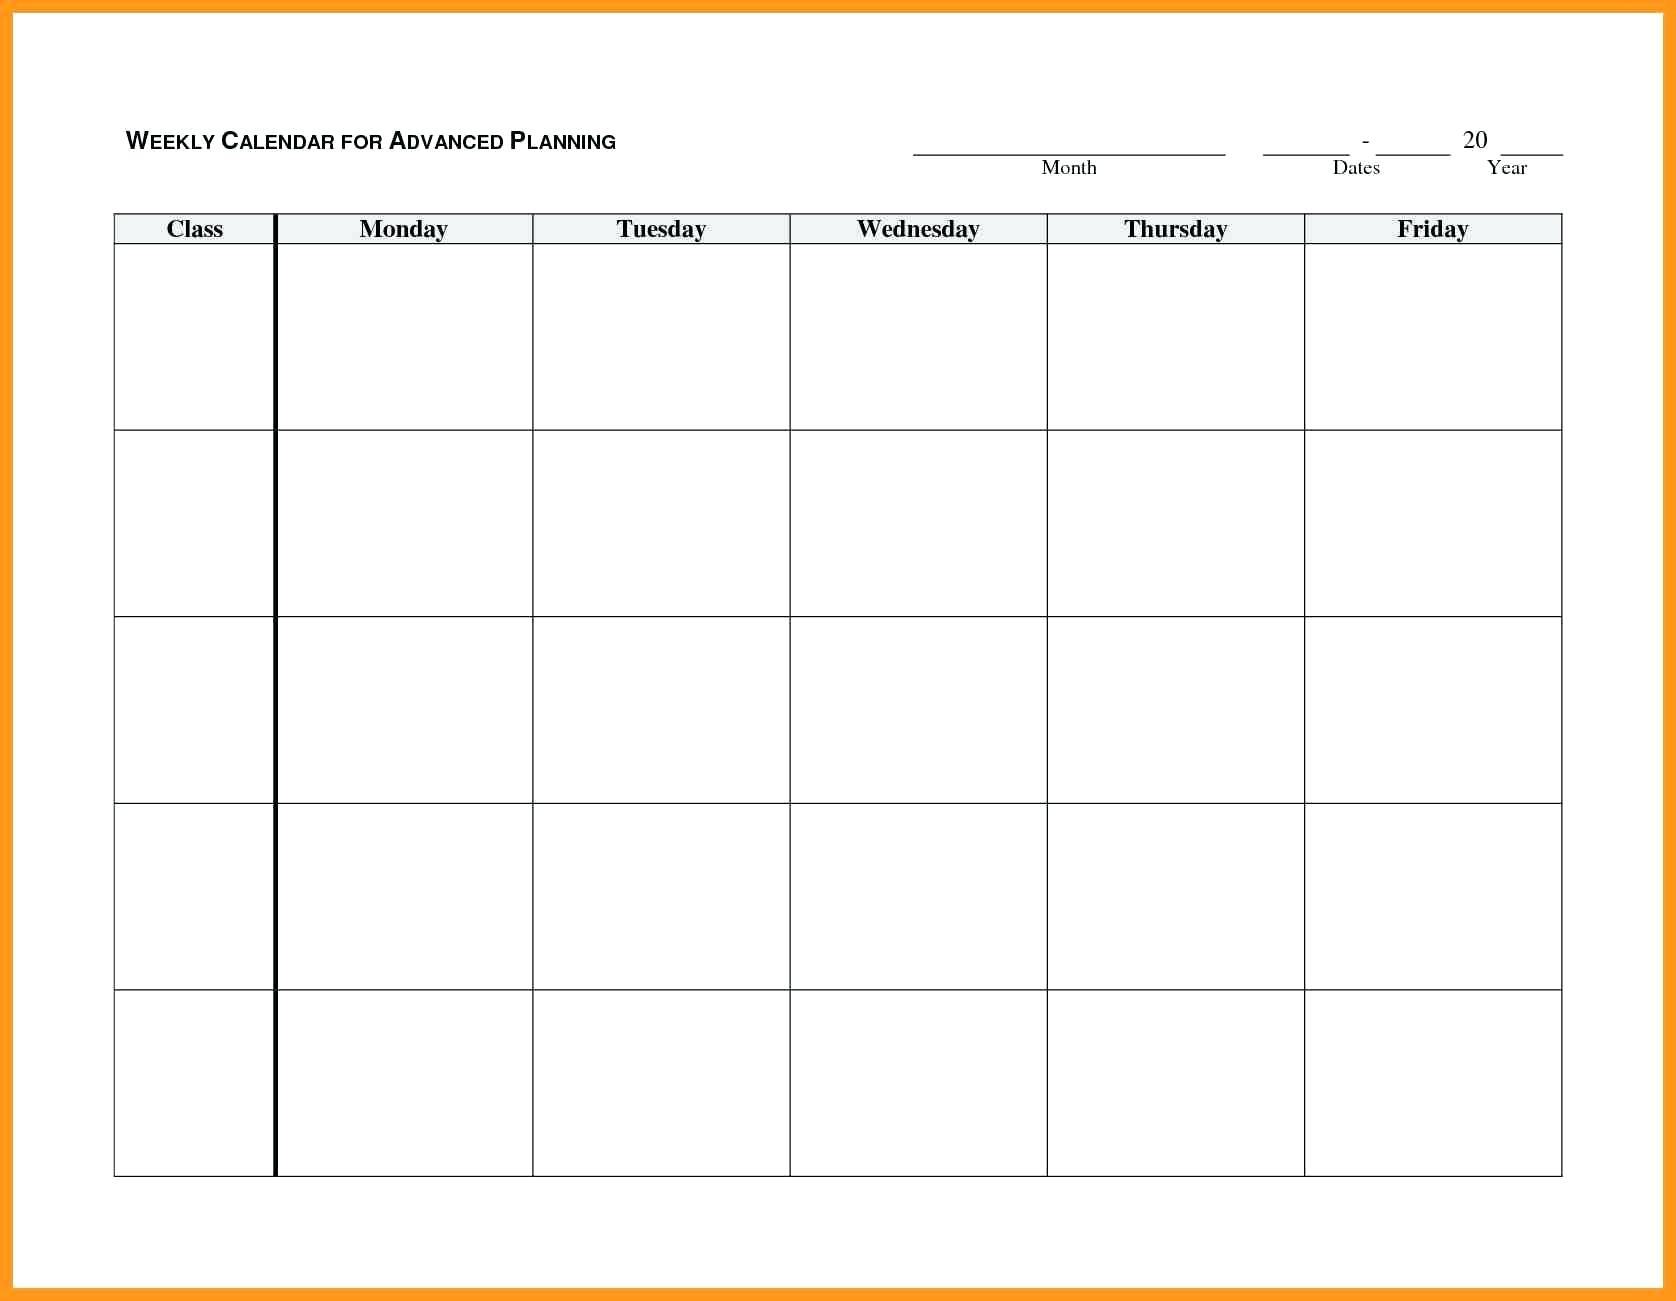 Blank Weekly Ndar Monday Through Friday Template Word Free Printable inside Template Monday Through Friday Calendar